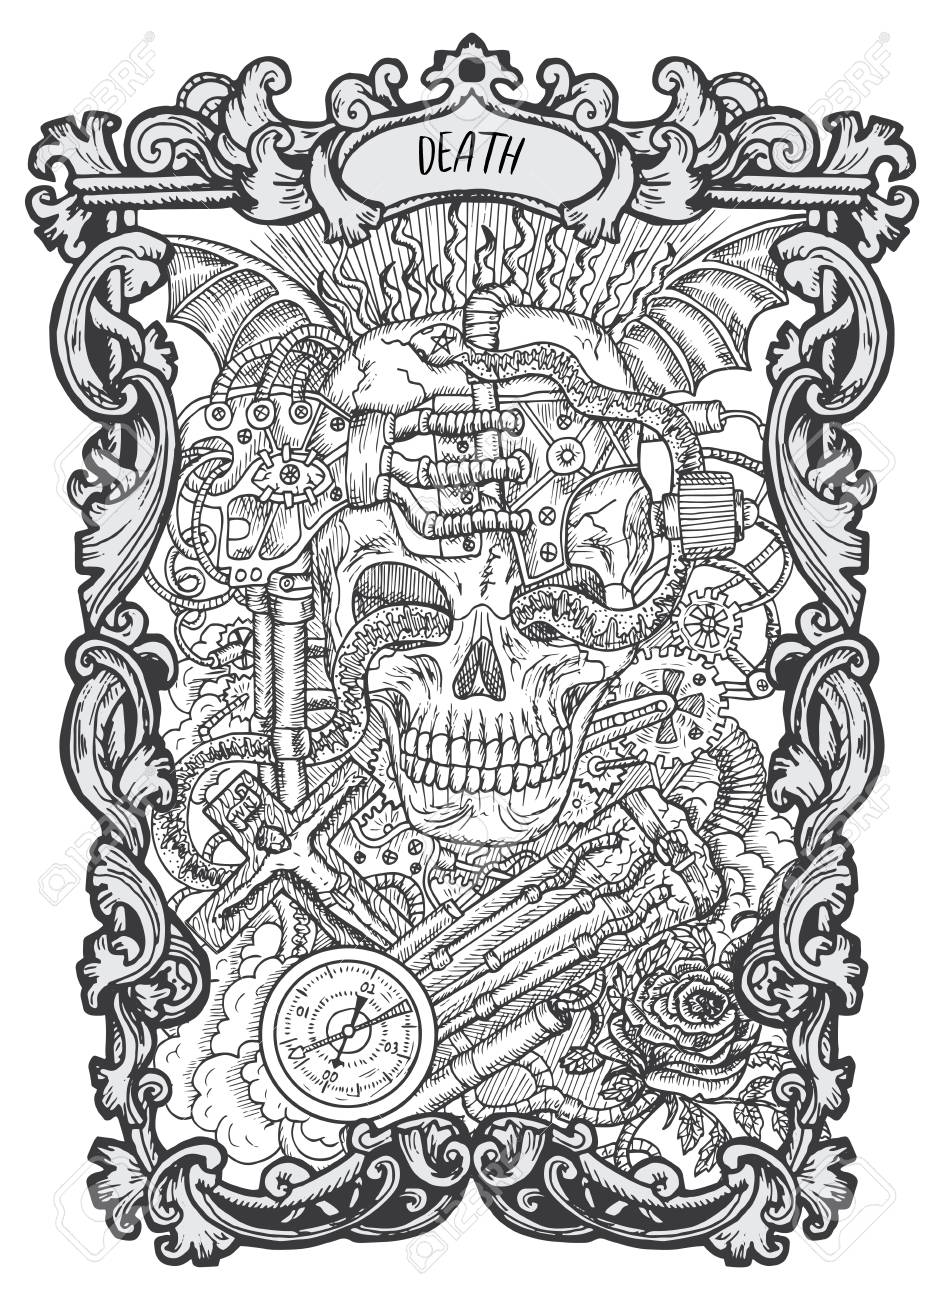 Death. Major Arcana tarot card. The Magic Gate deck. Fantasy engraved vector illustration with occult mysterious symbols and esoteric concept - 106878517